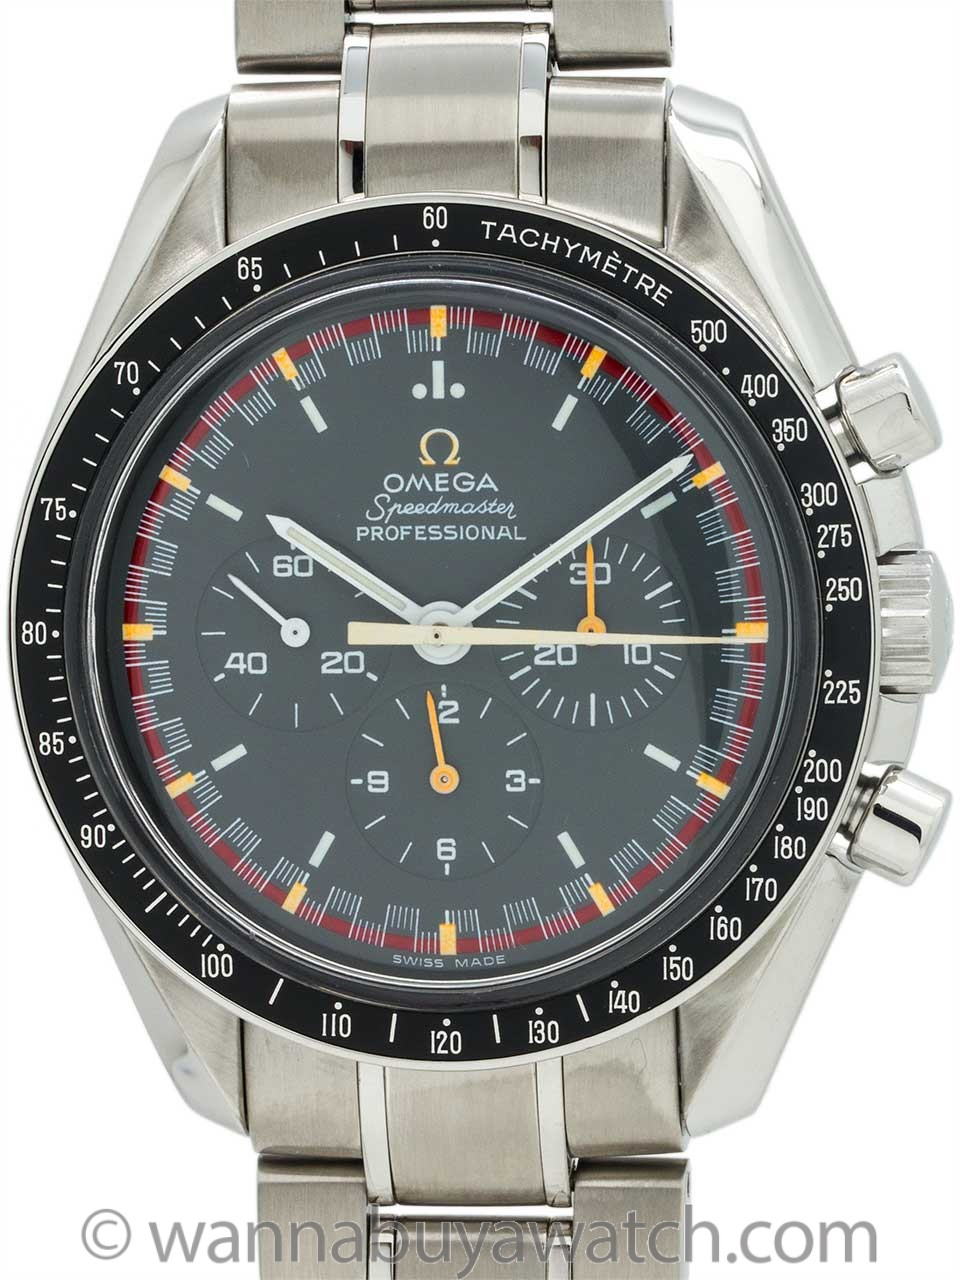 Omega SS Speedmaster Japan Special Racing circa 2004